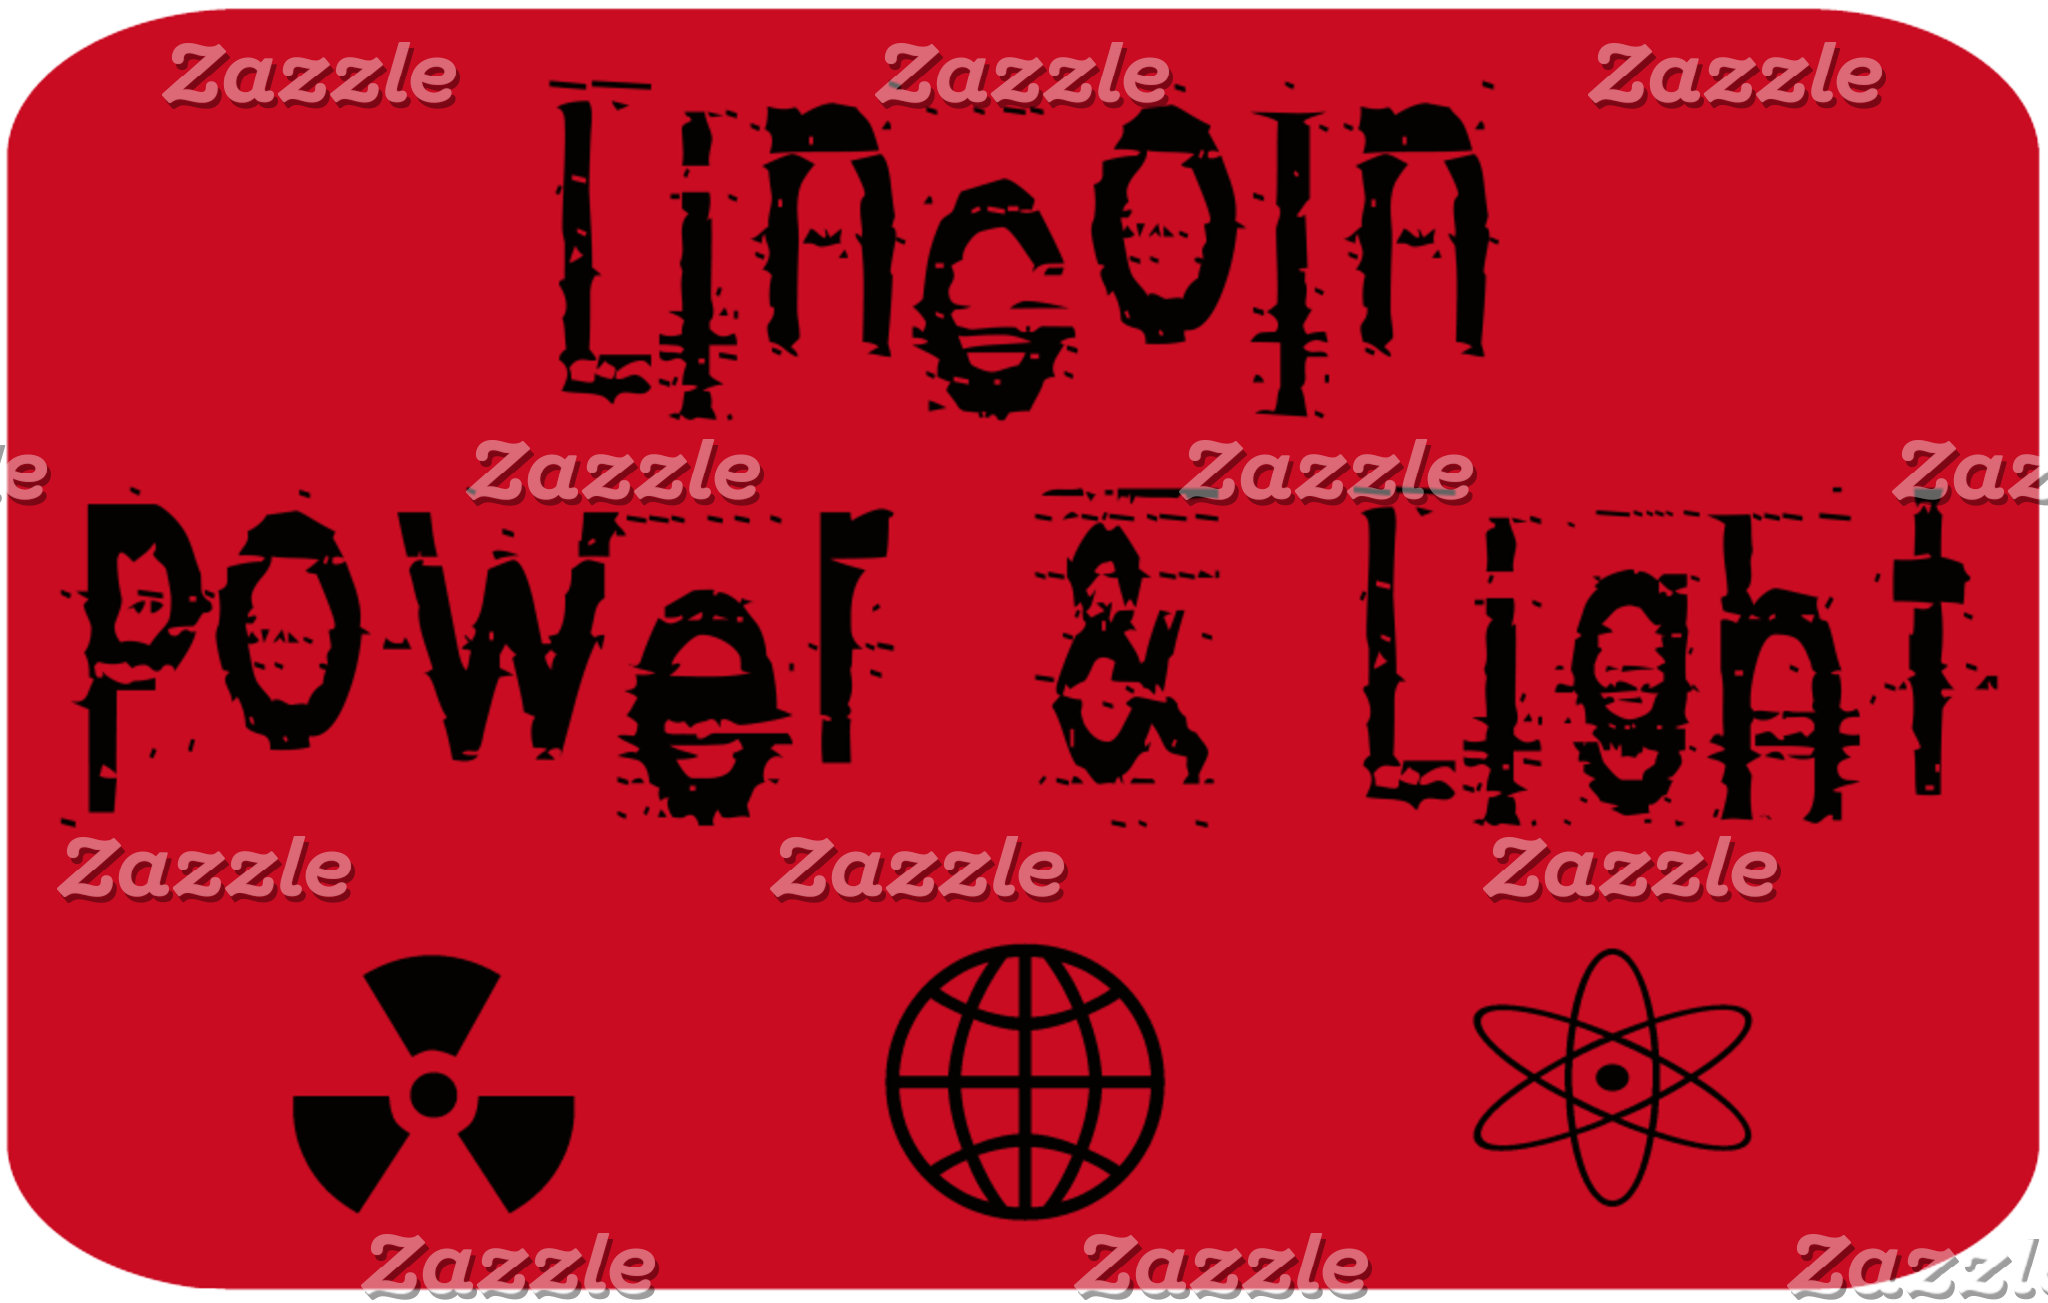 Lincoln Power and Light